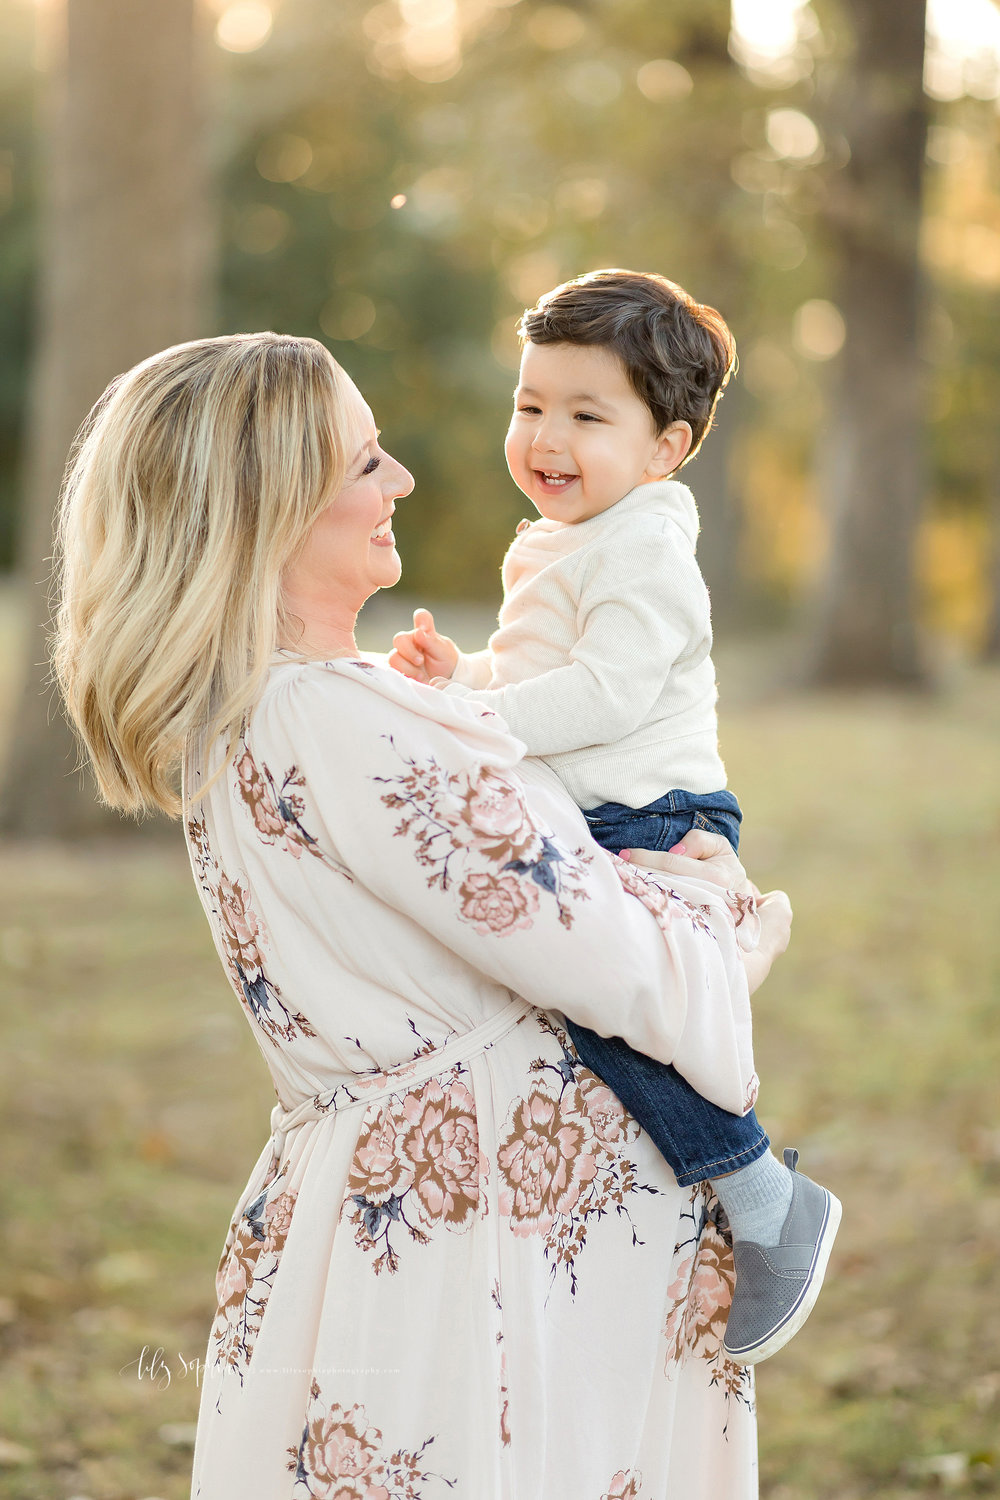 atlanta-midtown-brookhaven-decatur-lily-sophia-photography-photographer-portraits-grant-park-sunset-maternity-expecting-baby-girl-family-toddler-boy-big-brother_0094.jpg